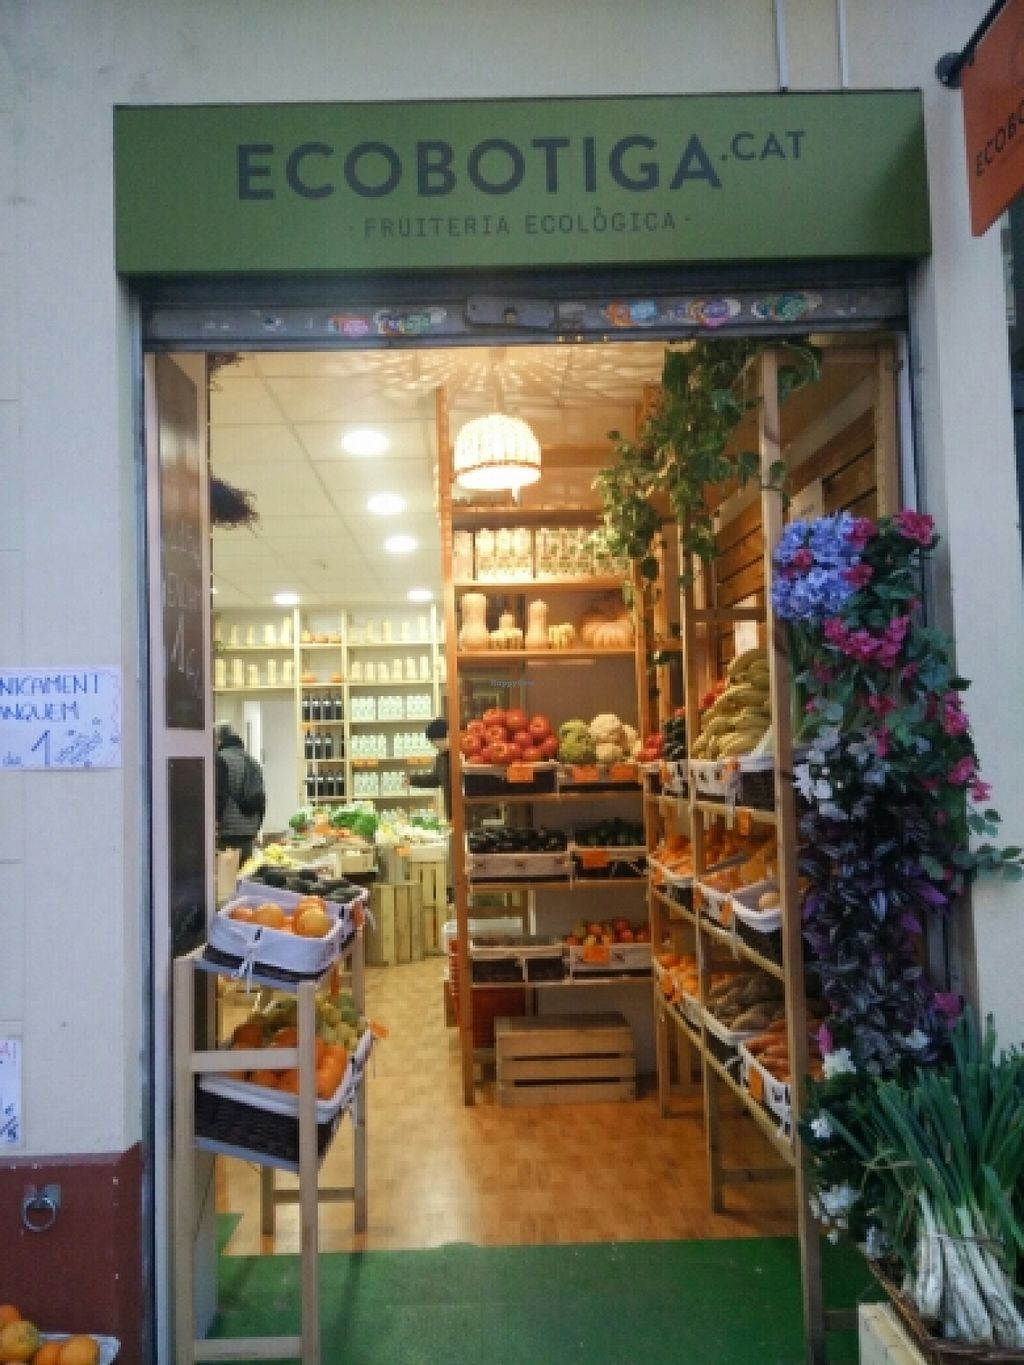 """Photo of Ecobotiga.cat - Poble nou  by <a href=""""/members/profile/asya.sofia"""">asya.sofia</a> <br/>store front <br/> December 28, 2015  - <a href='/contact/abuse/image/65745/130140'>Report</a>"""